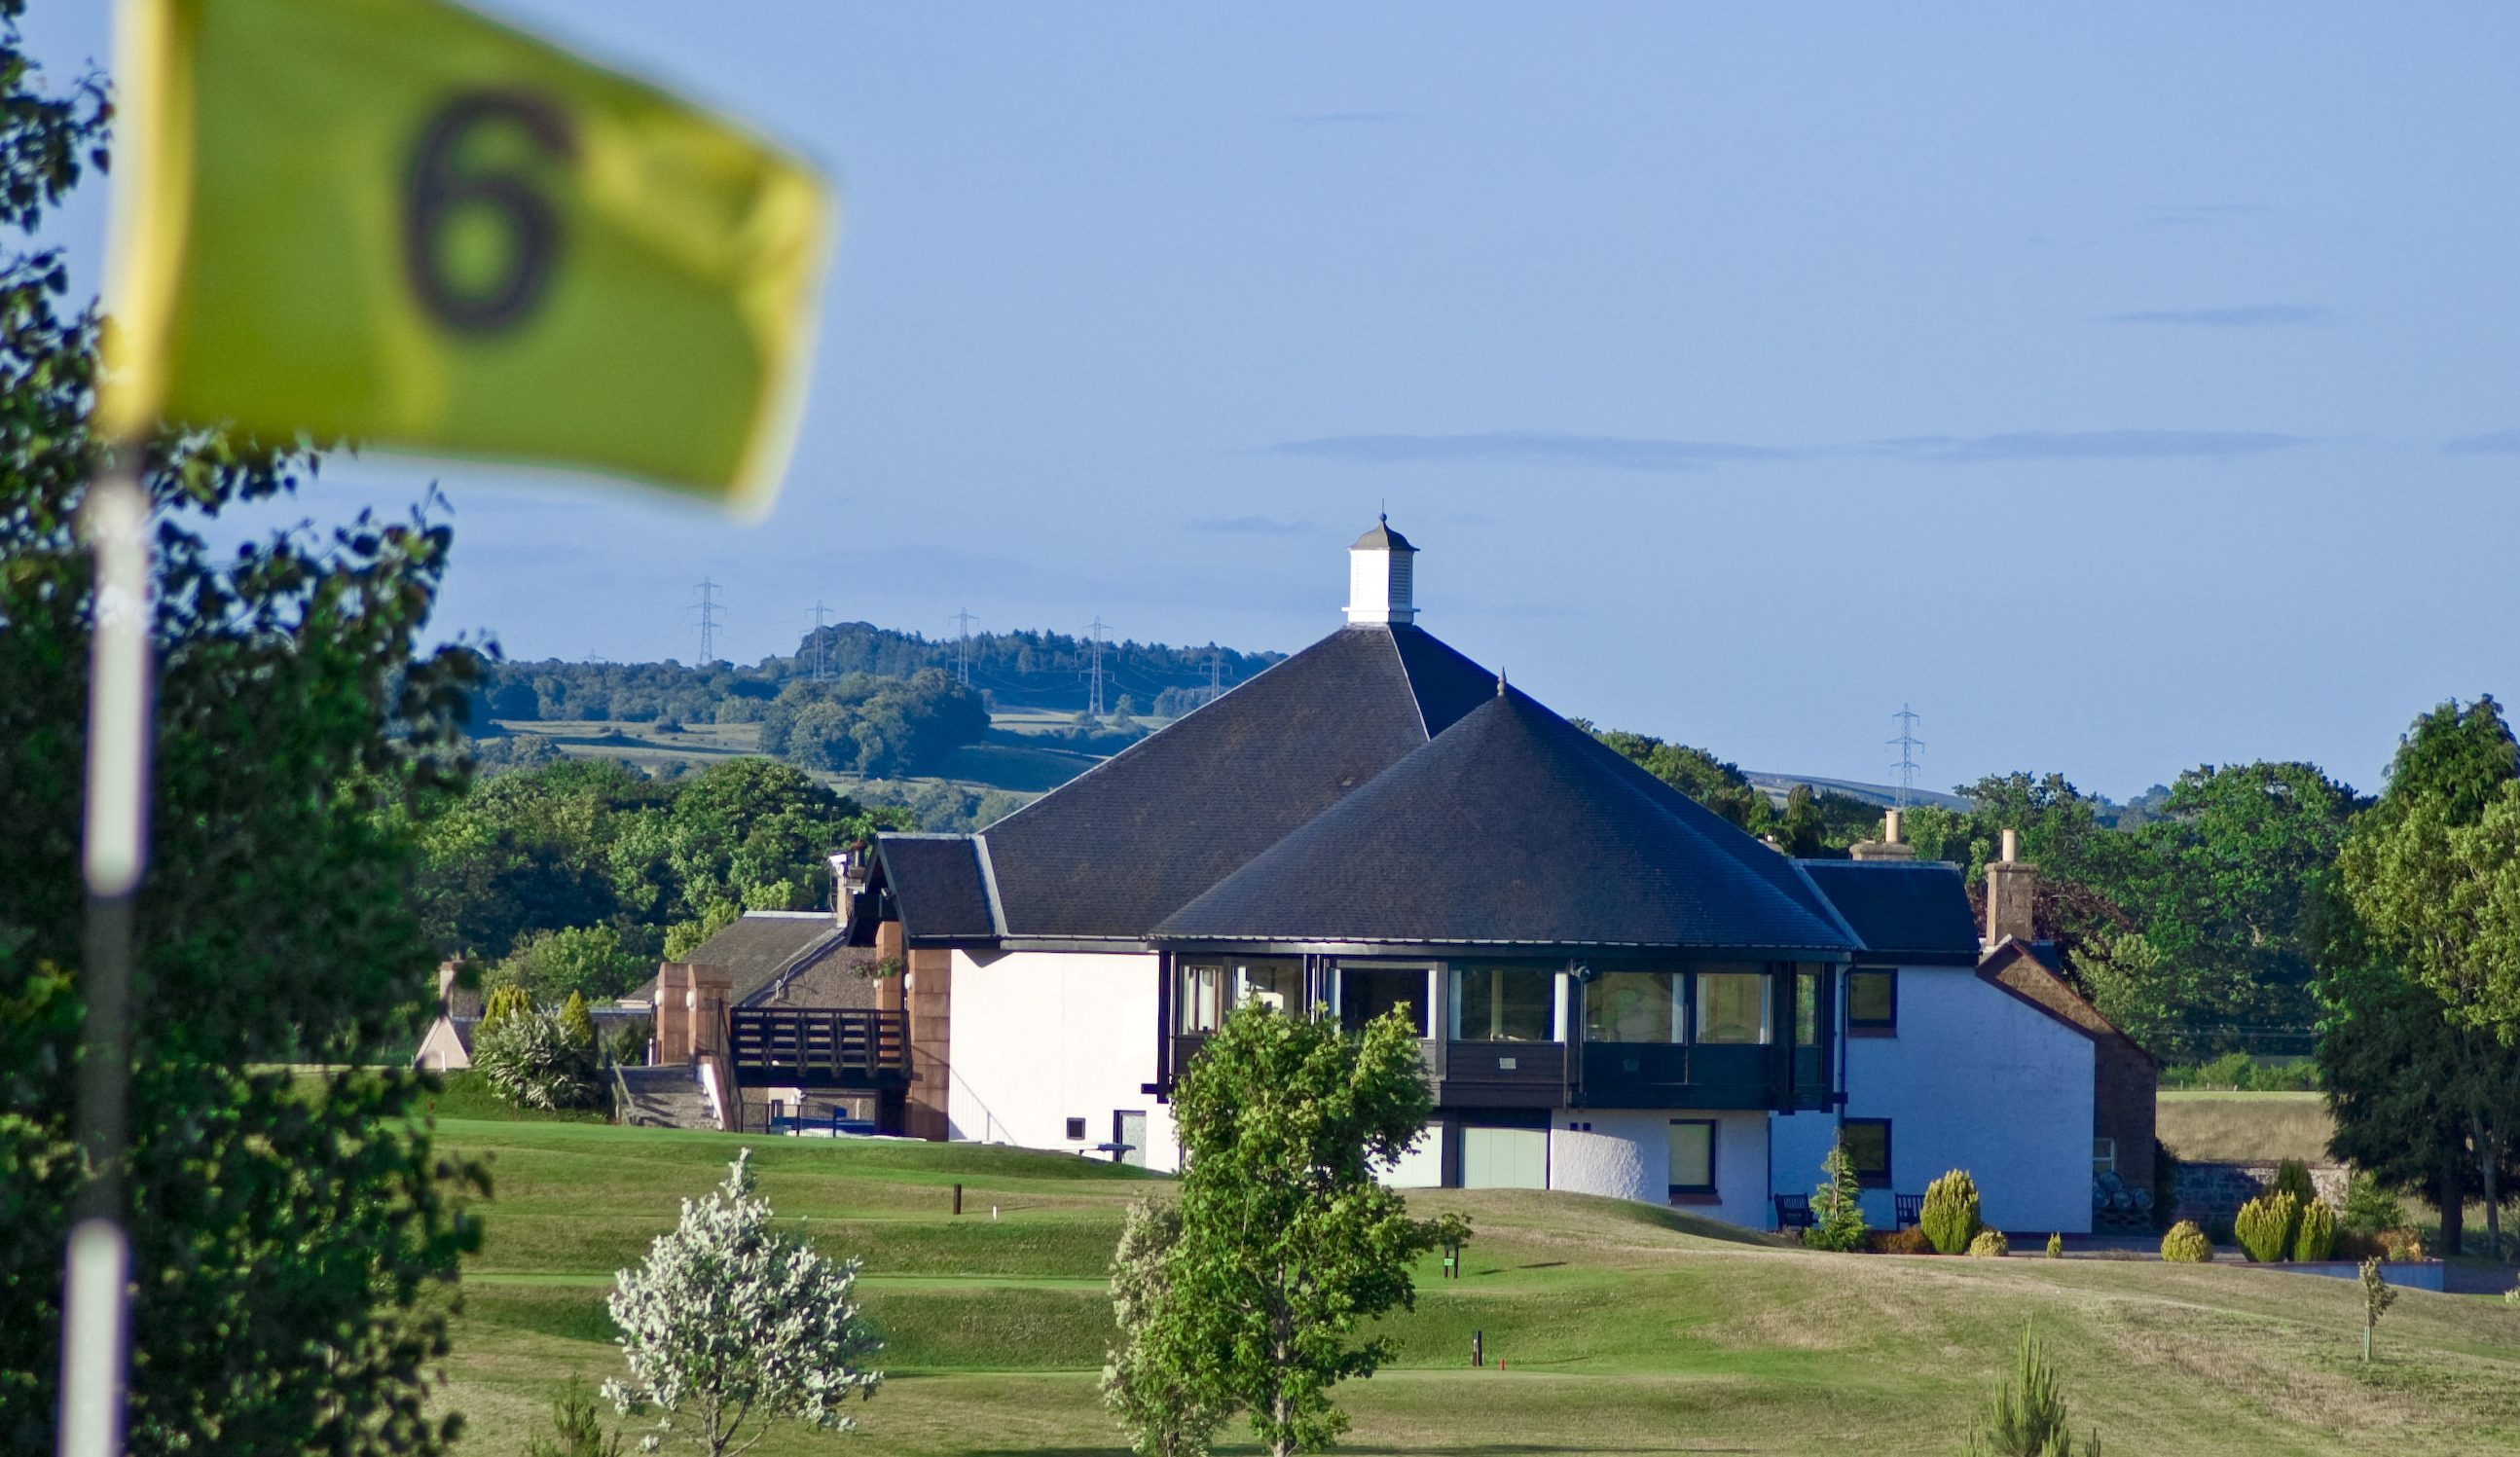 The Glenisla course and clubhouse.